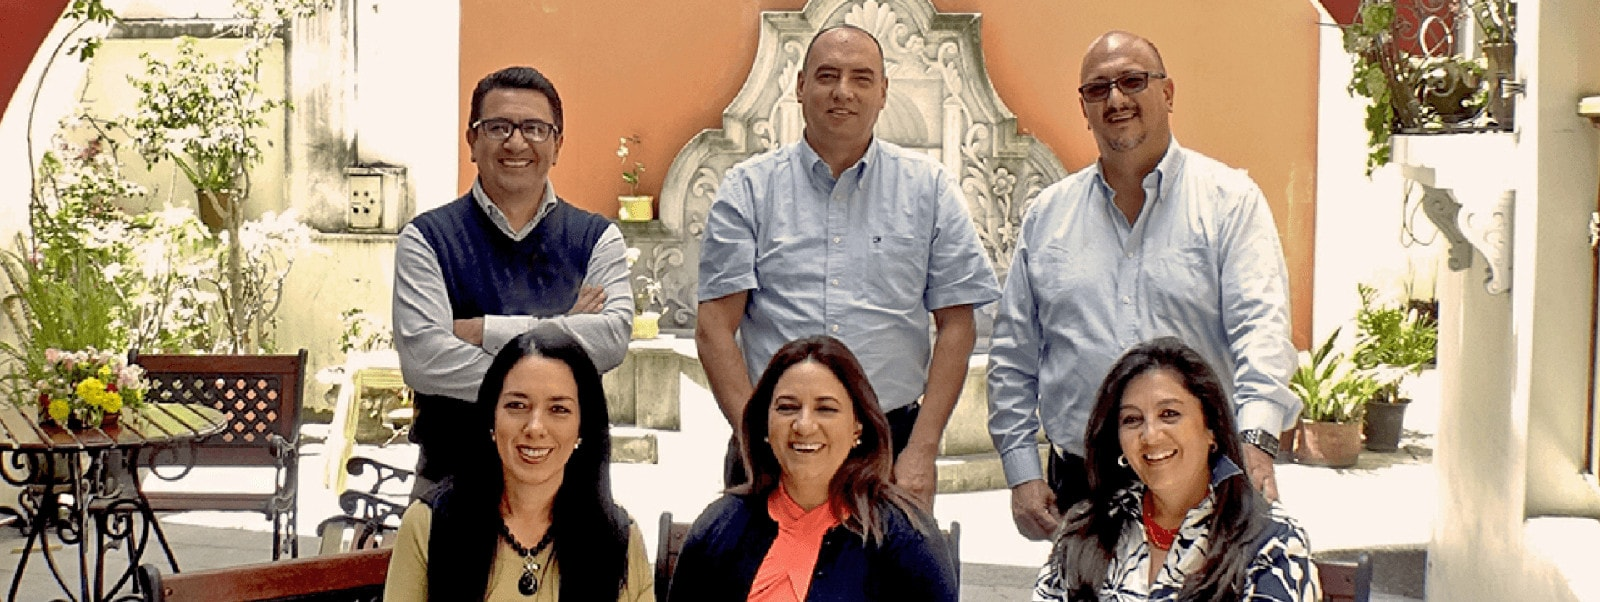 Academia Latinoamericana Spanish school - Management team